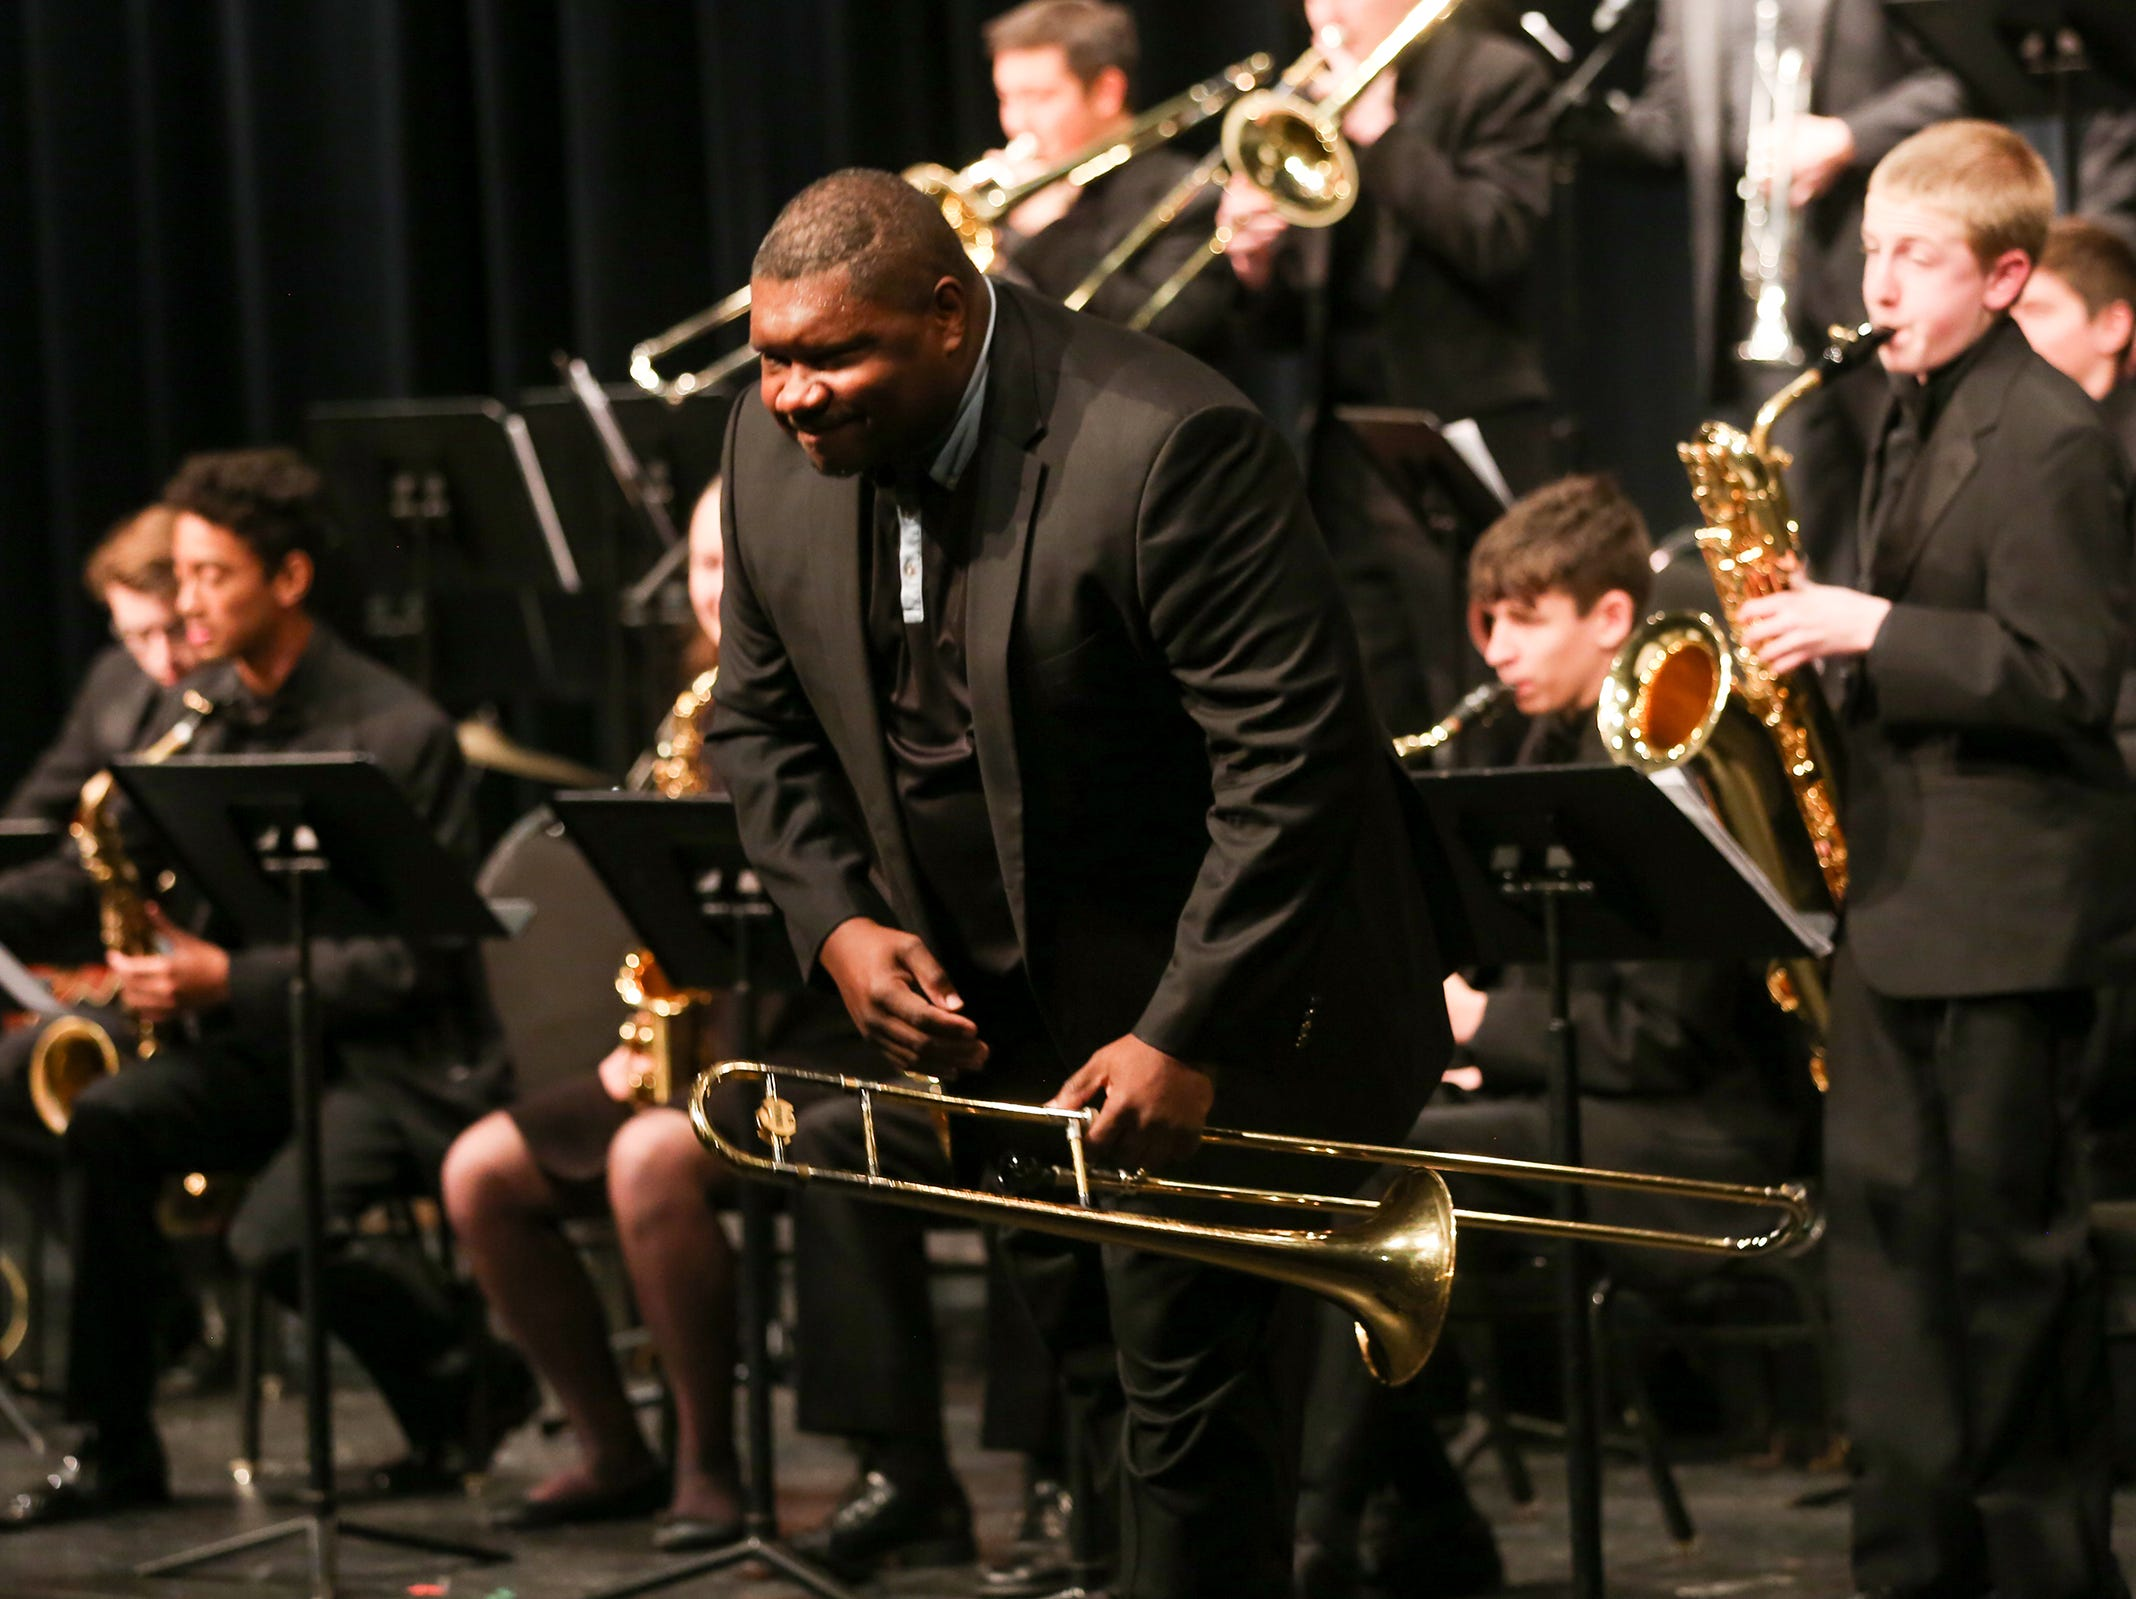 Jazz trombonist Wycliffe A. Gordon takes a bow while he performs with West Salem High School students at the annual West Salem Jazz Festival at West Salem High School on Saturday, Feb. 9, 2019.